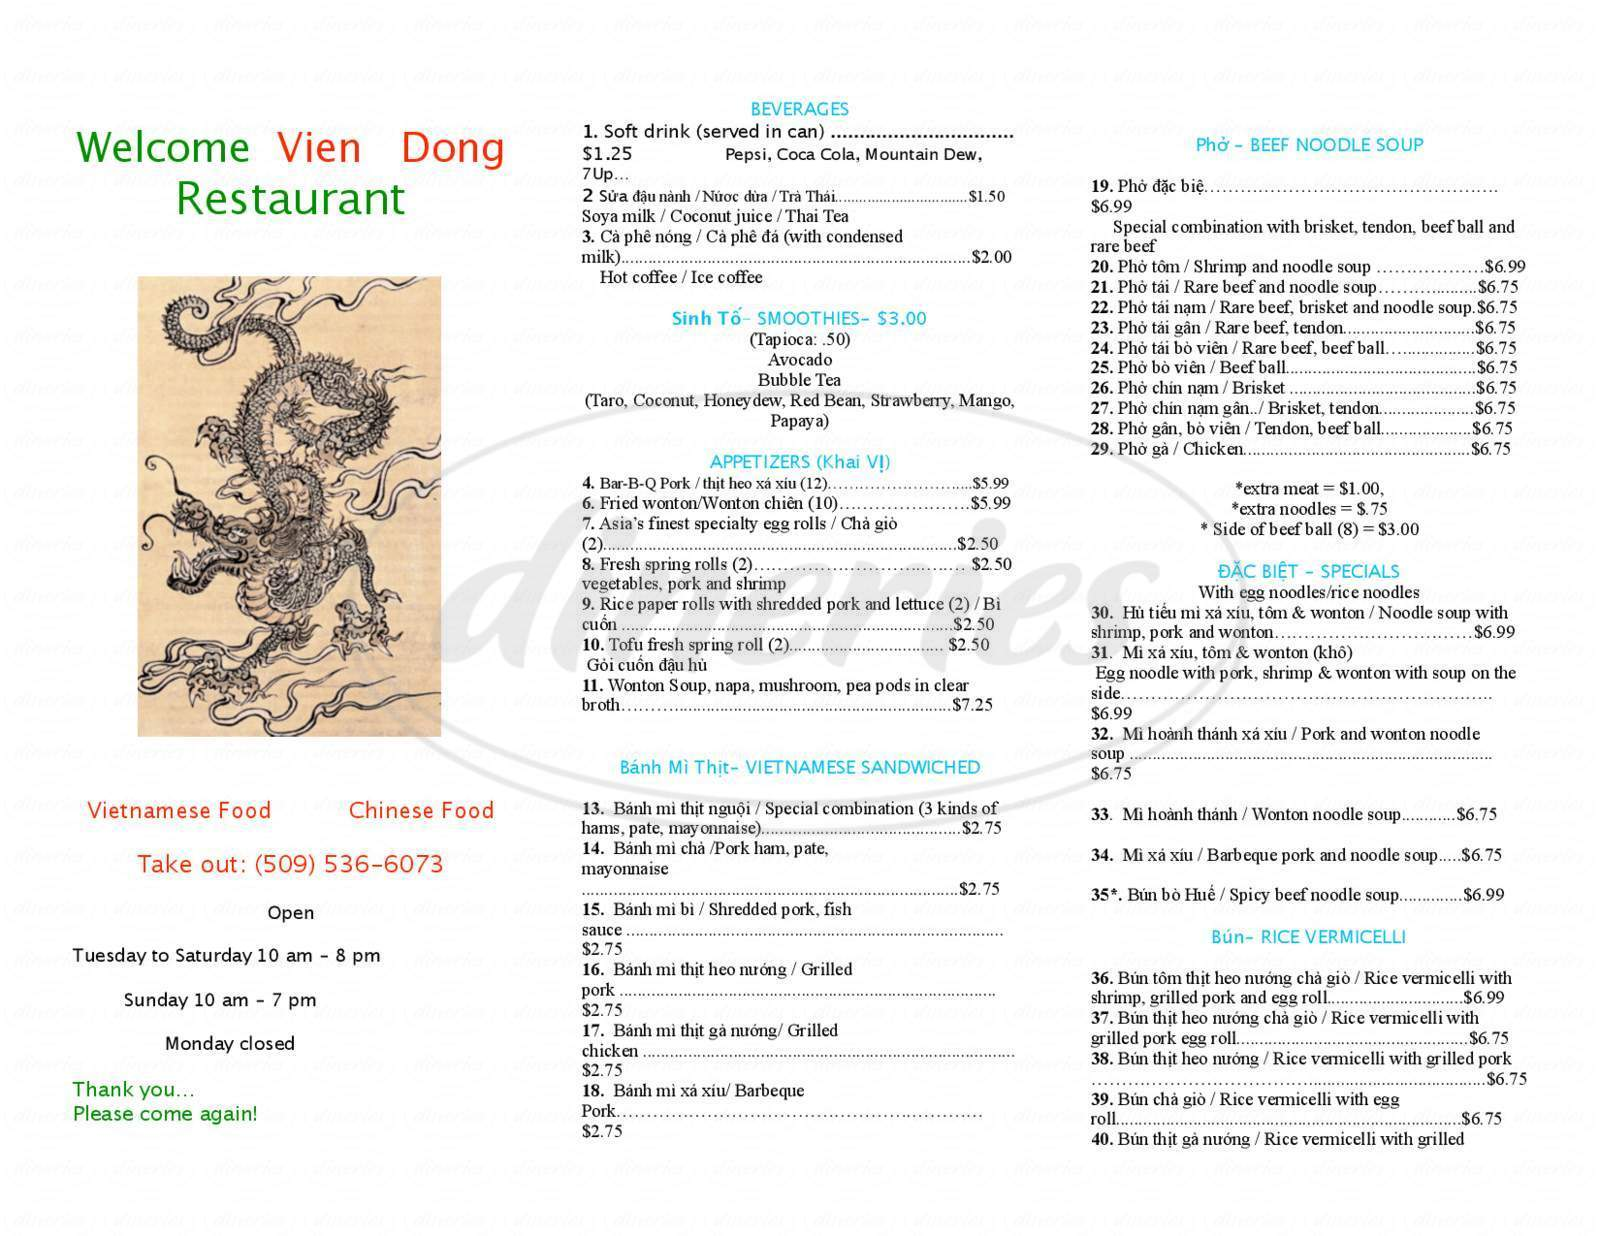 menu for Vien Dong